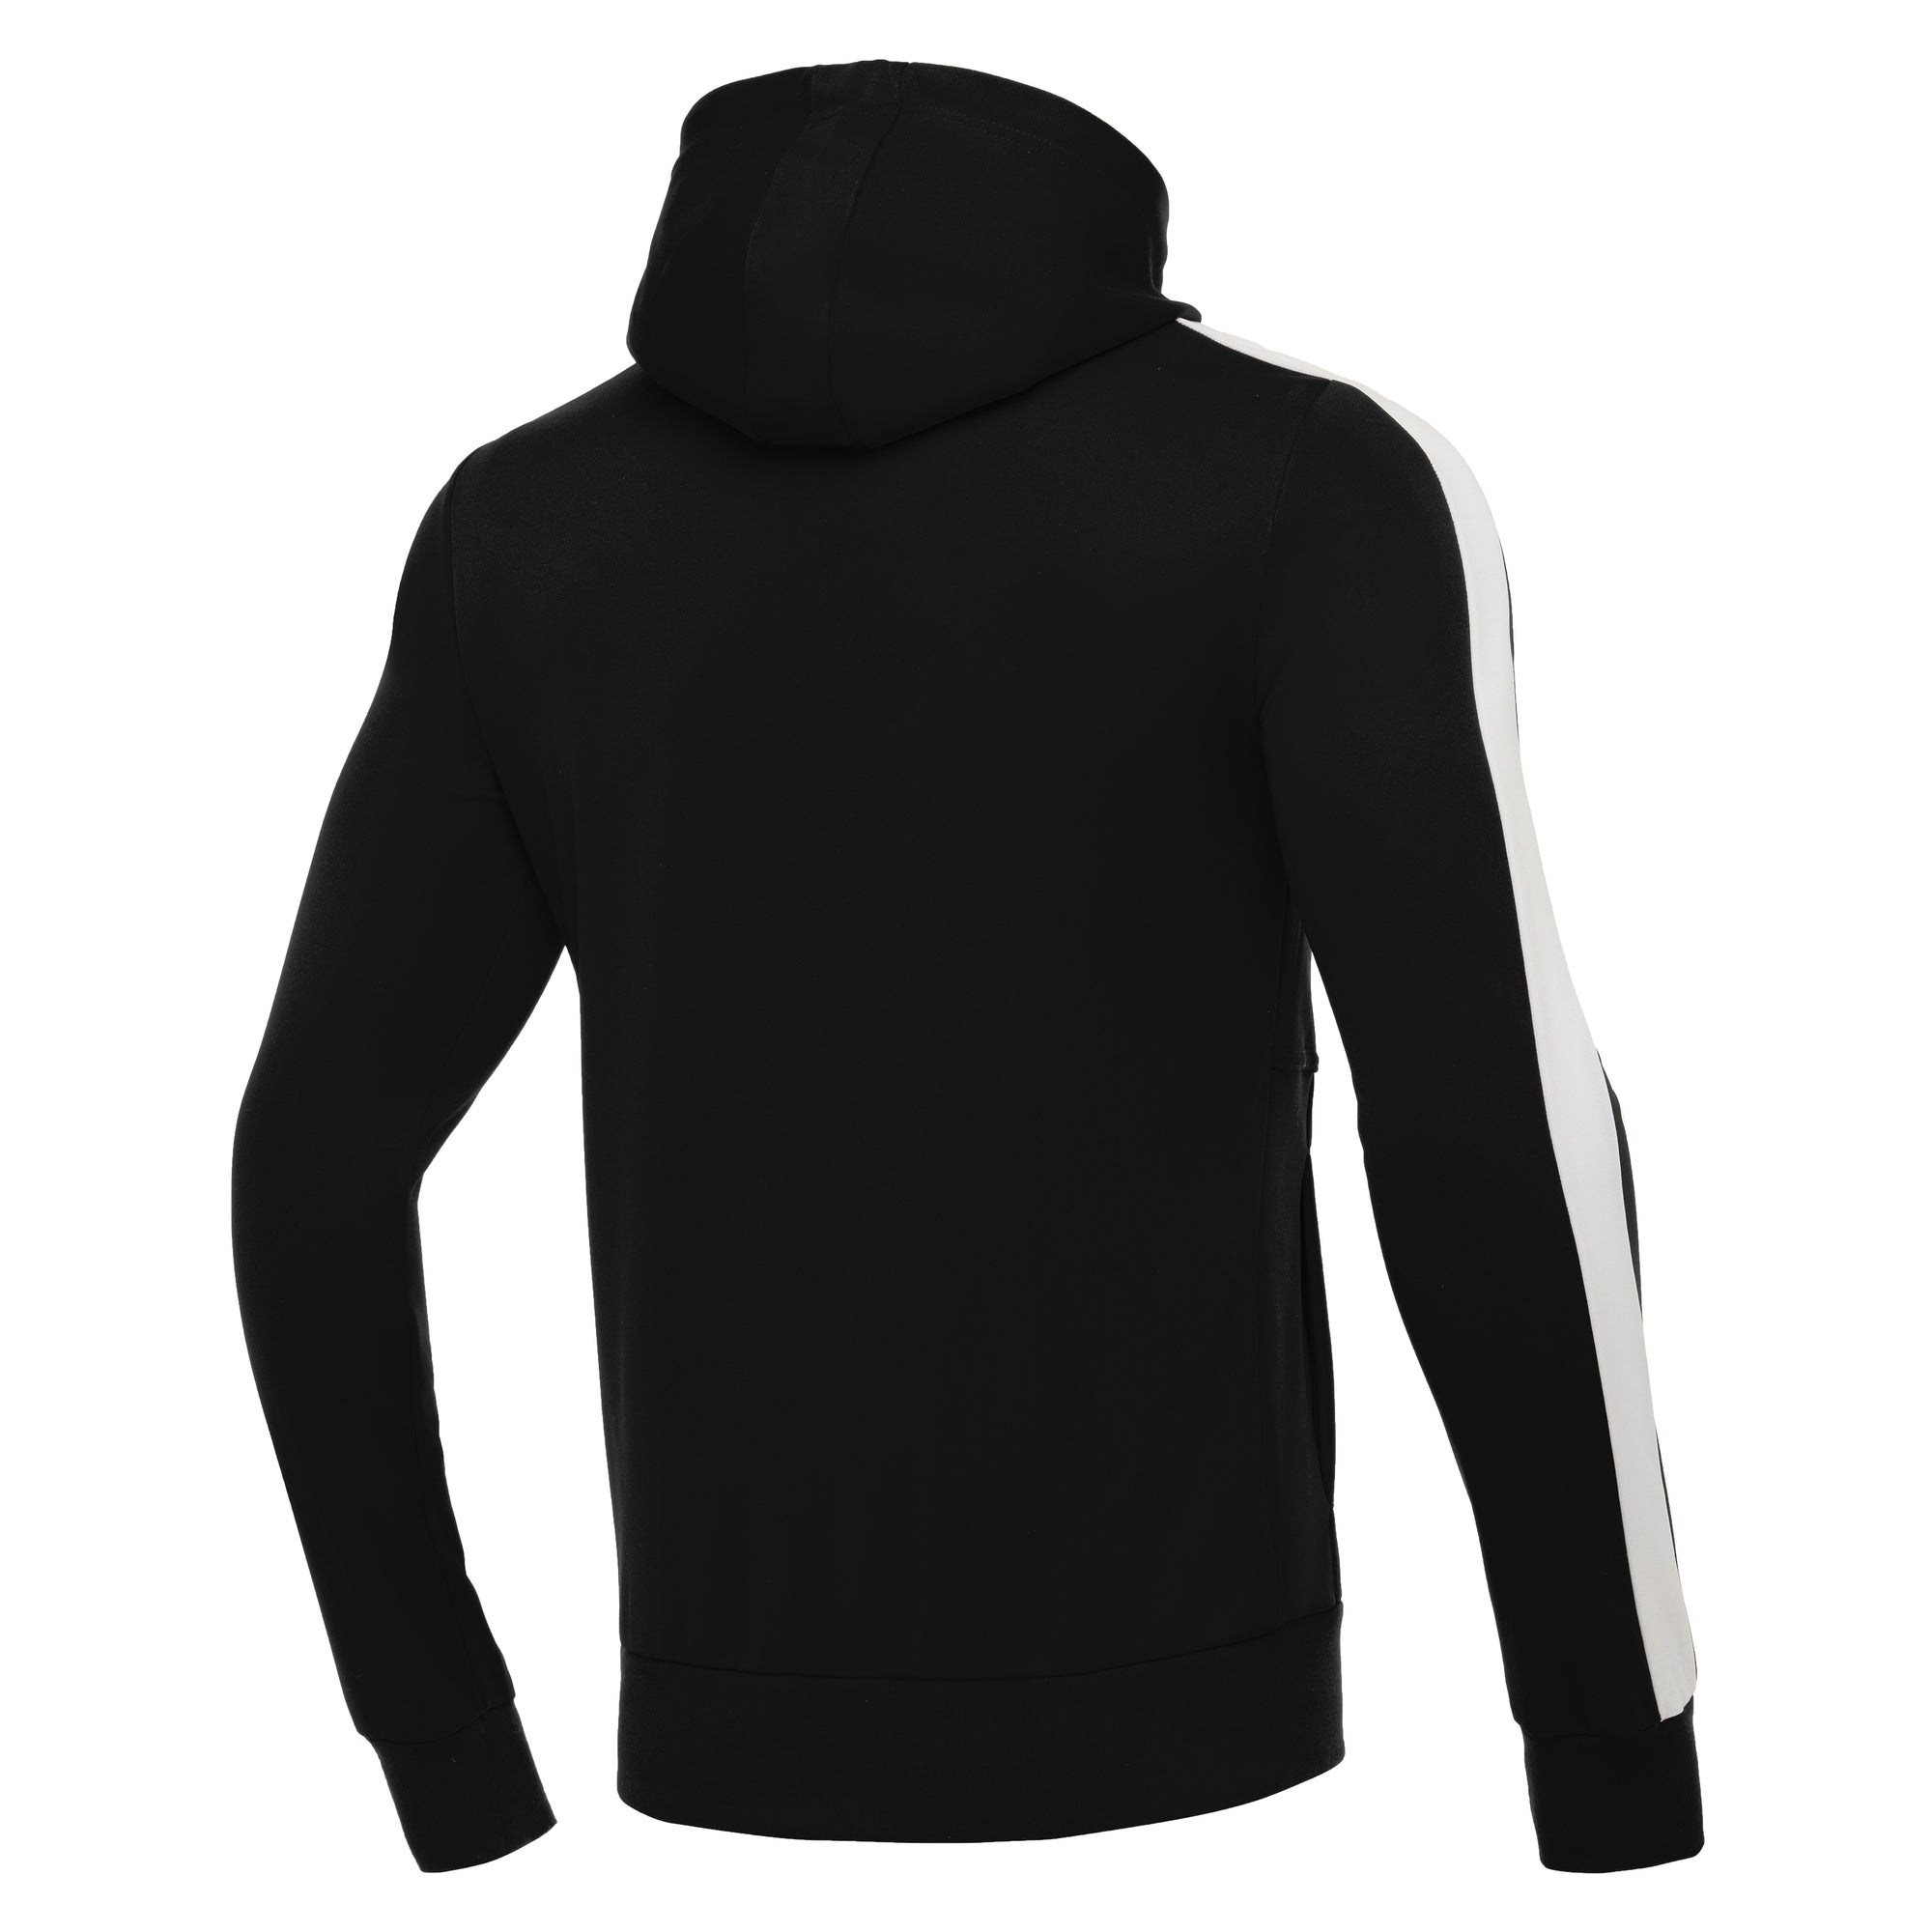 Macron SKA Hoody Sweatshirt - Final Sale - ITA Sports Shop